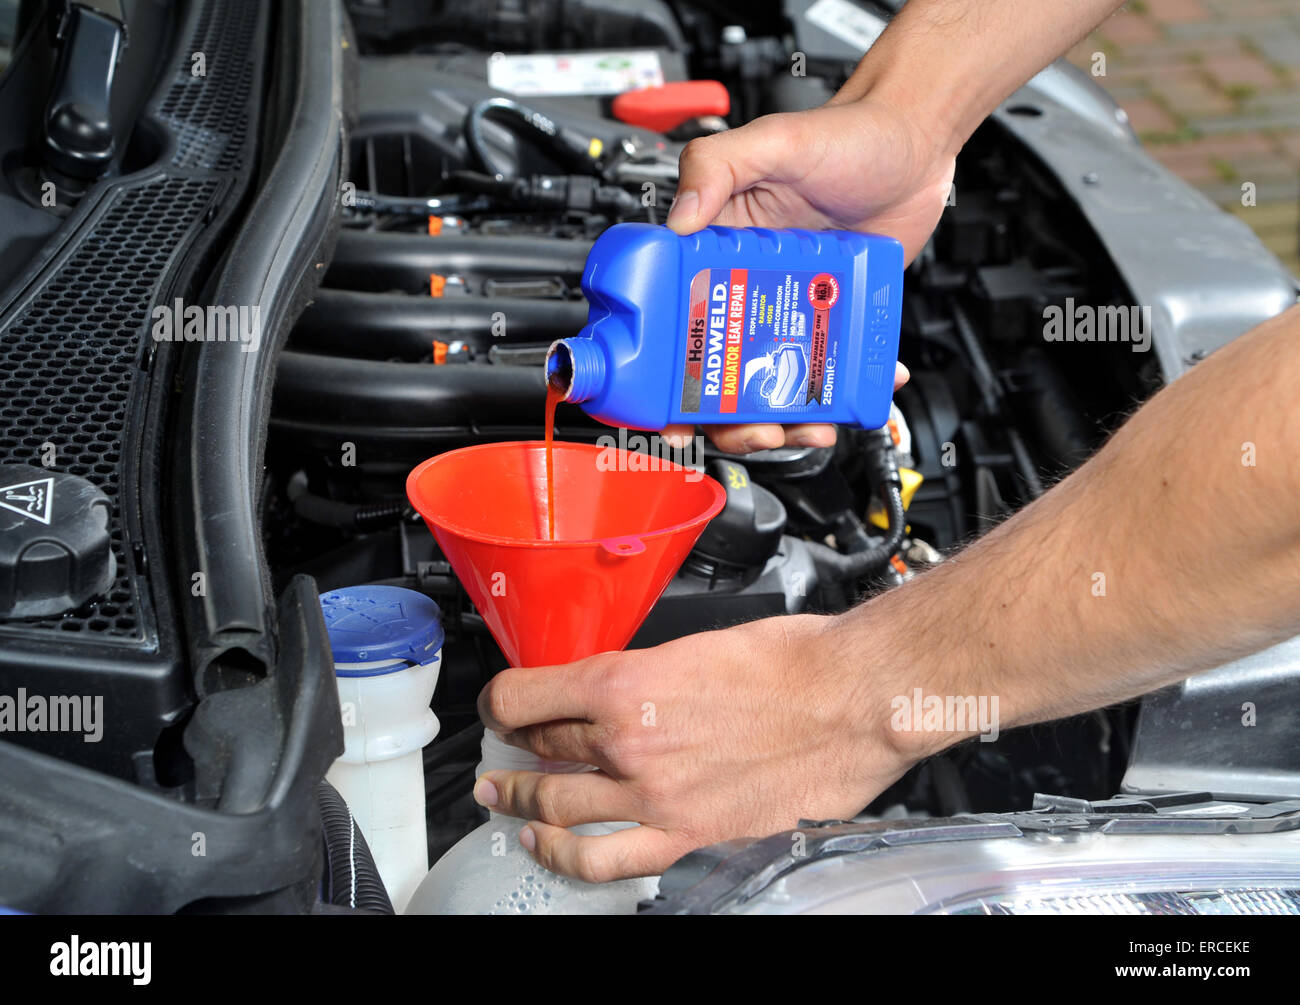 Pouring Radiator Repair Liquid Into A Car Cooling System